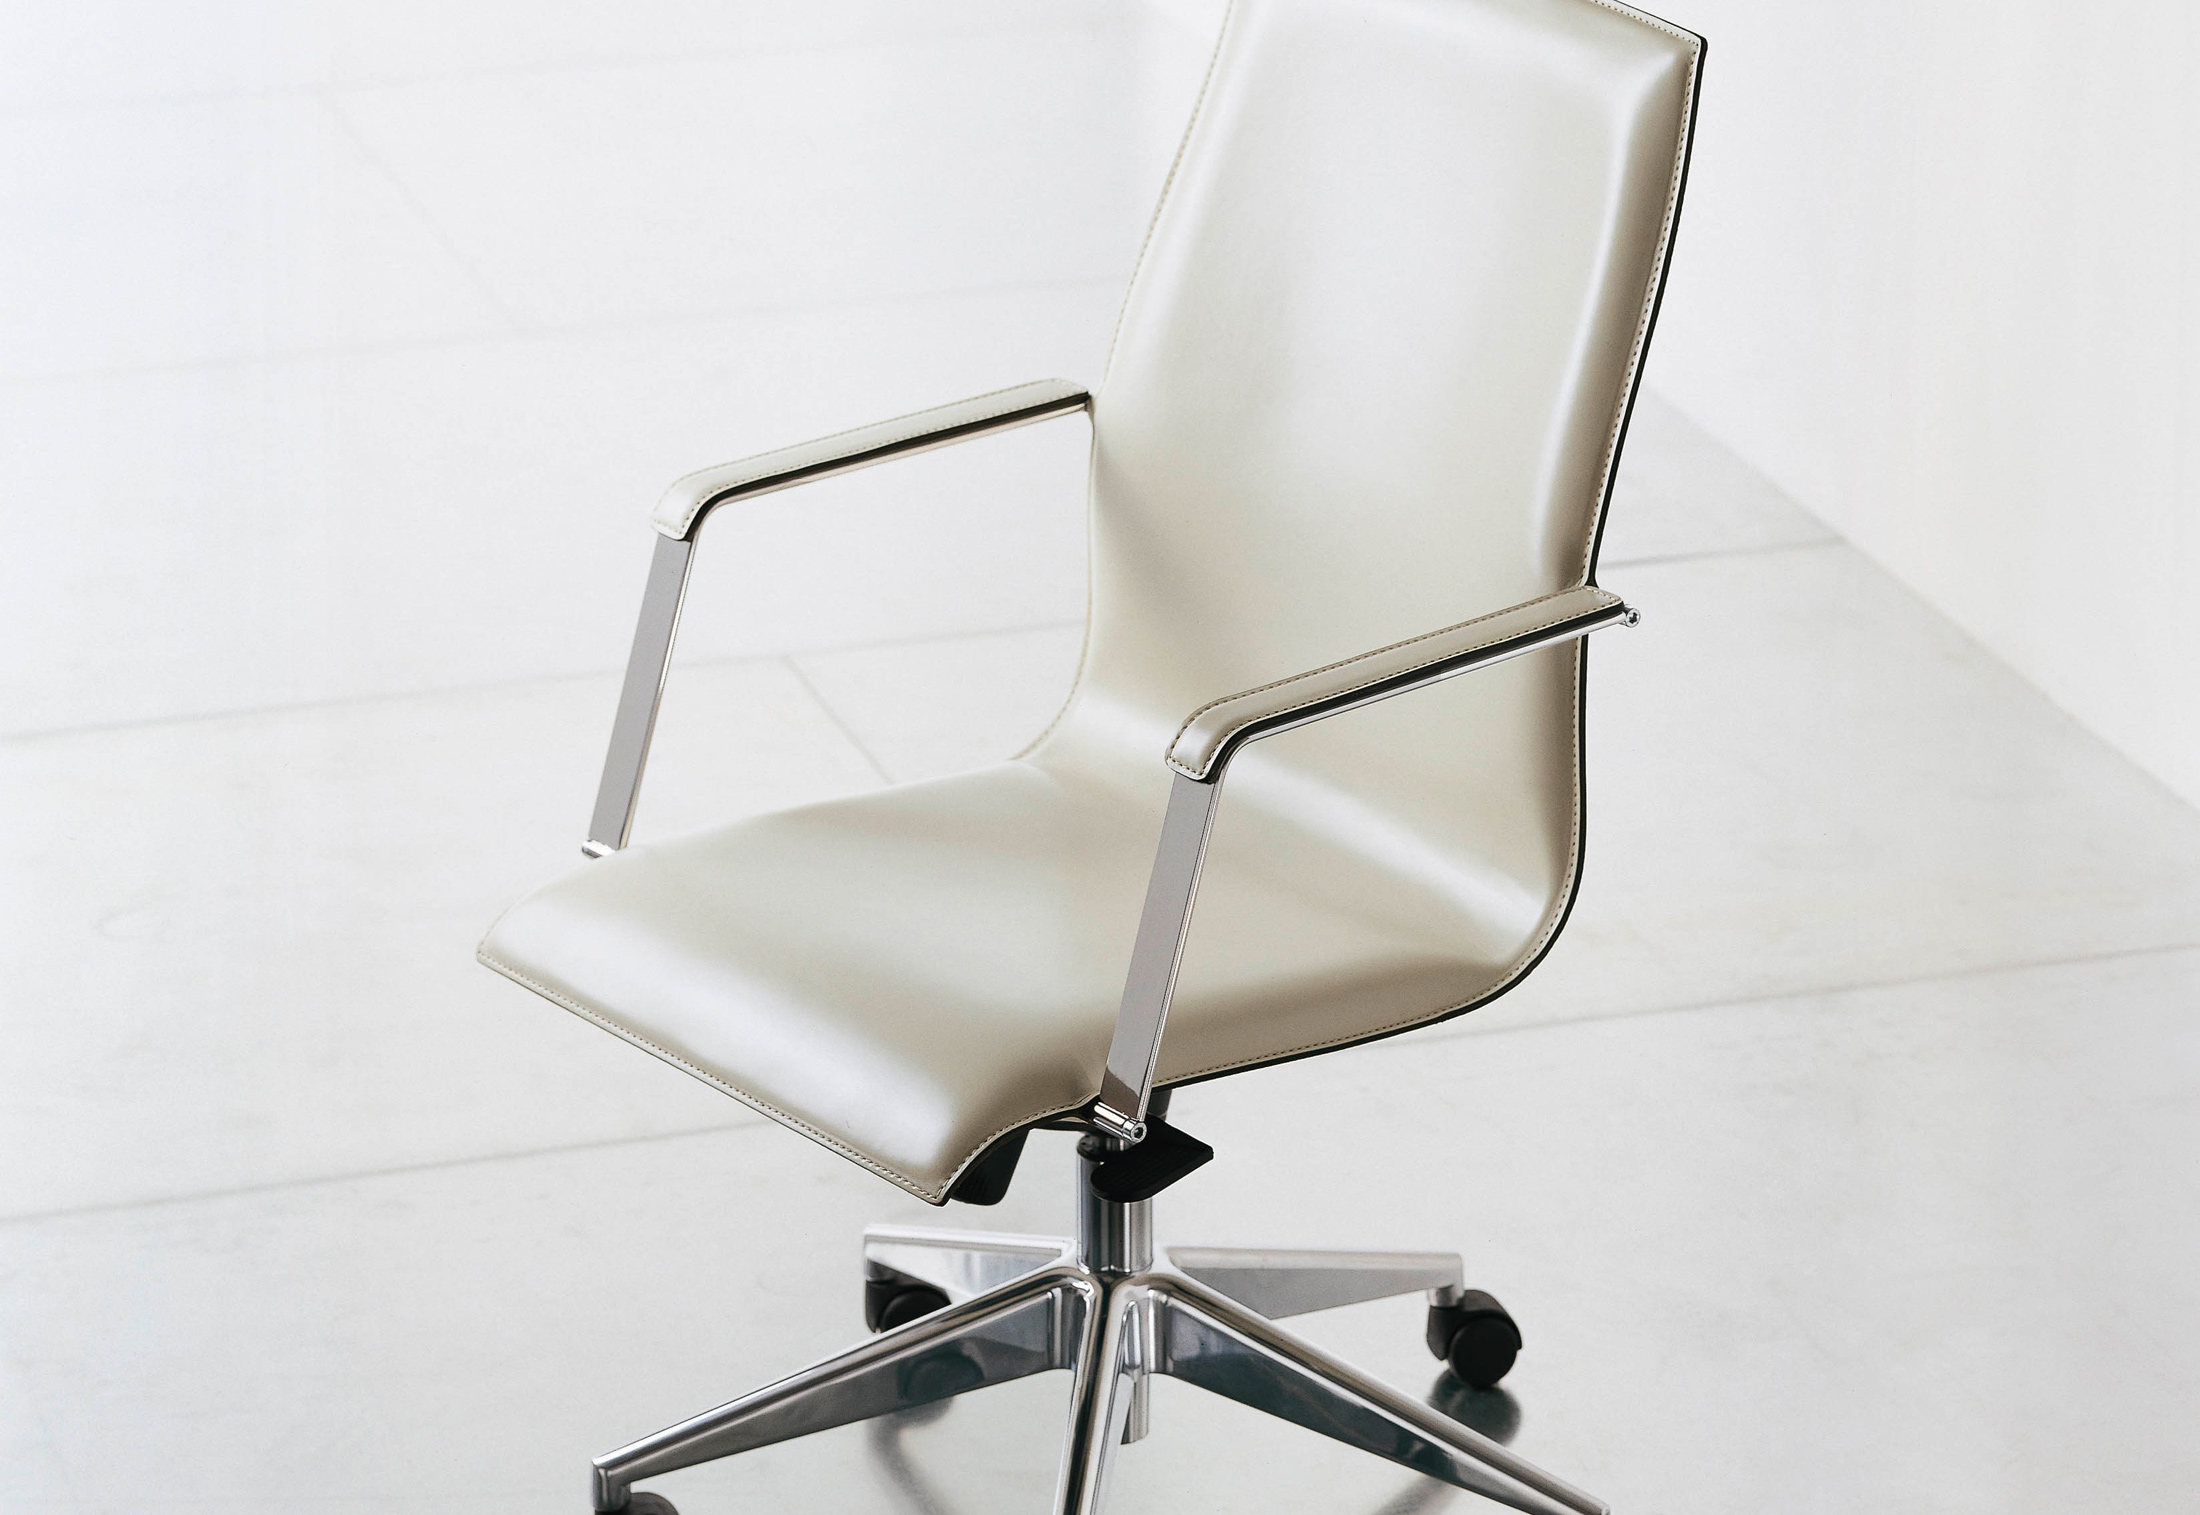 executive office chairs specifications chair cushions tie on kx swivel by fantoni stylepark